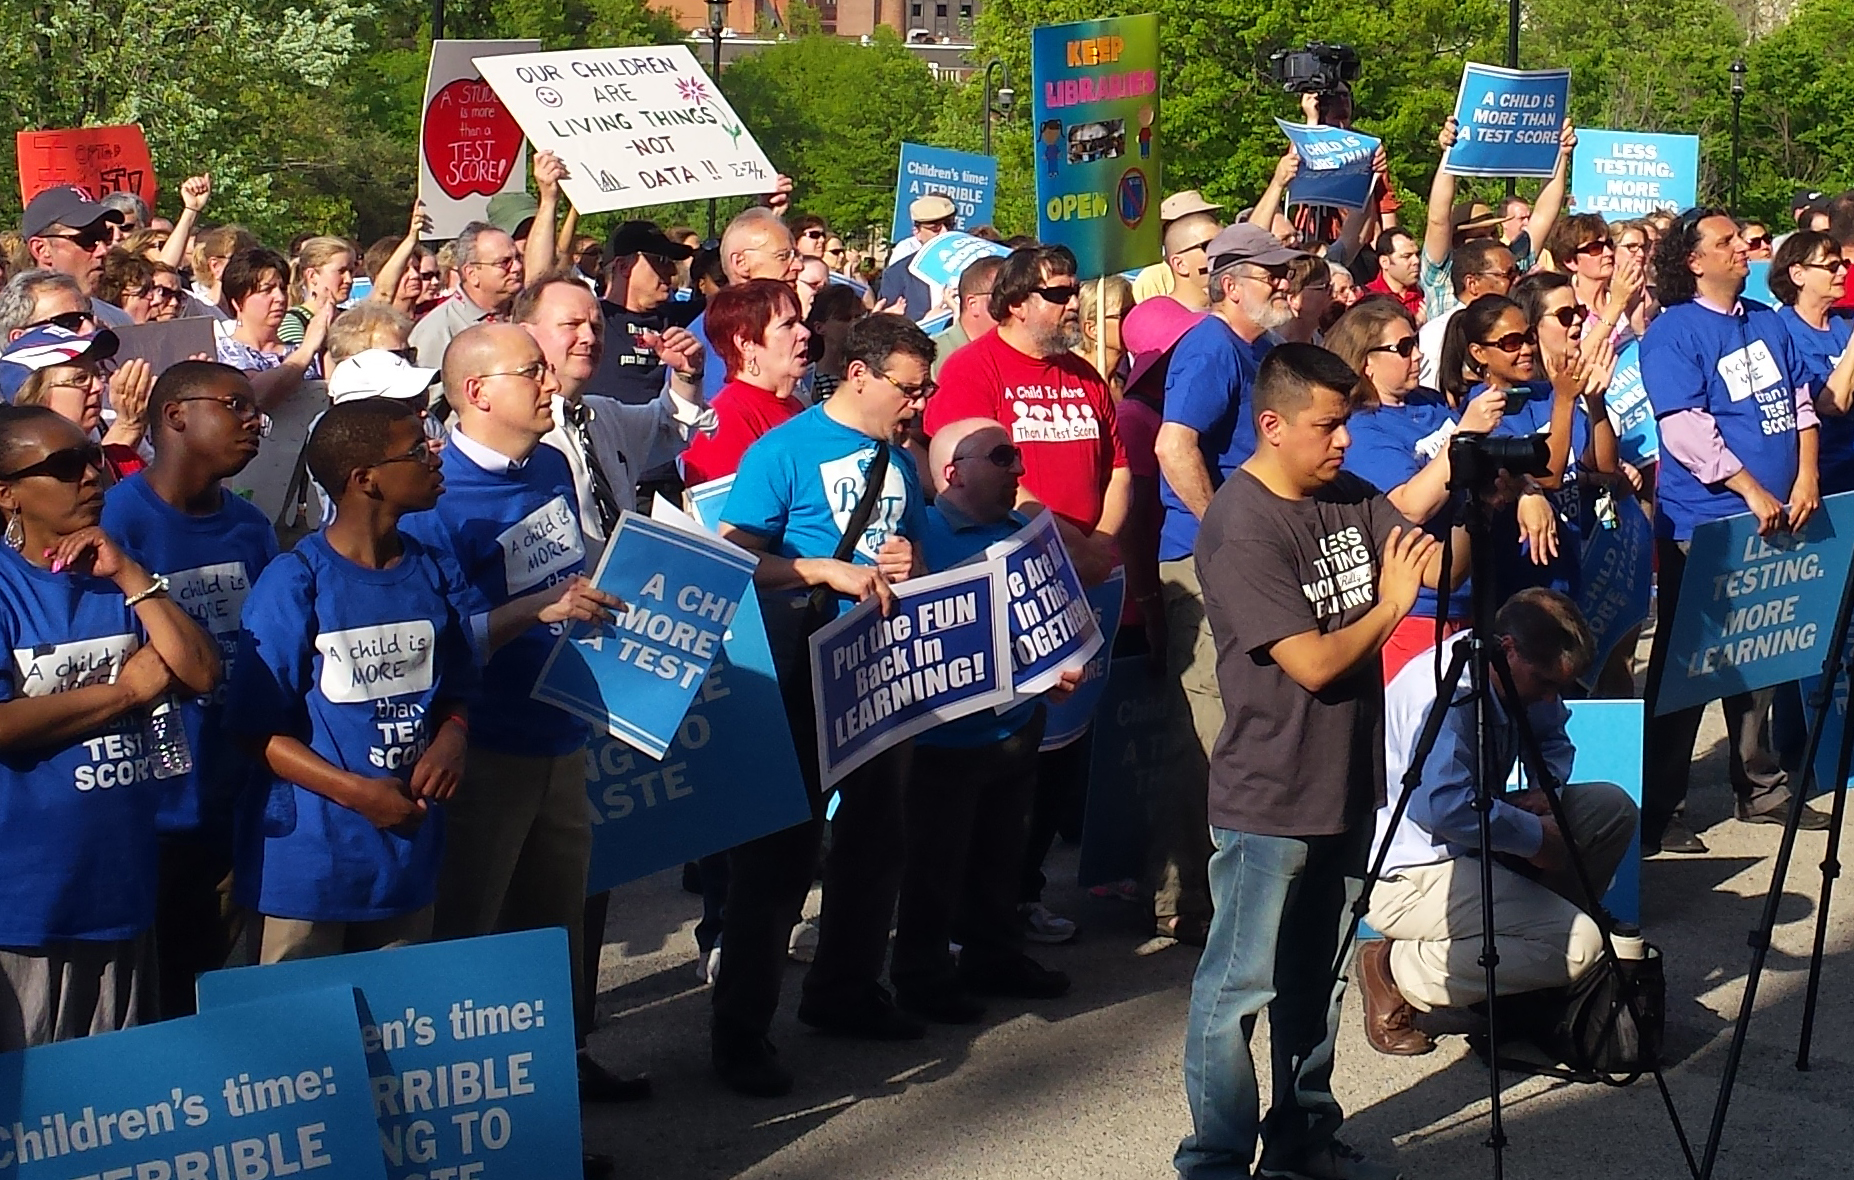 Teachers rally against Smarter Balanced test at Capitol: 'Put the test to rest'